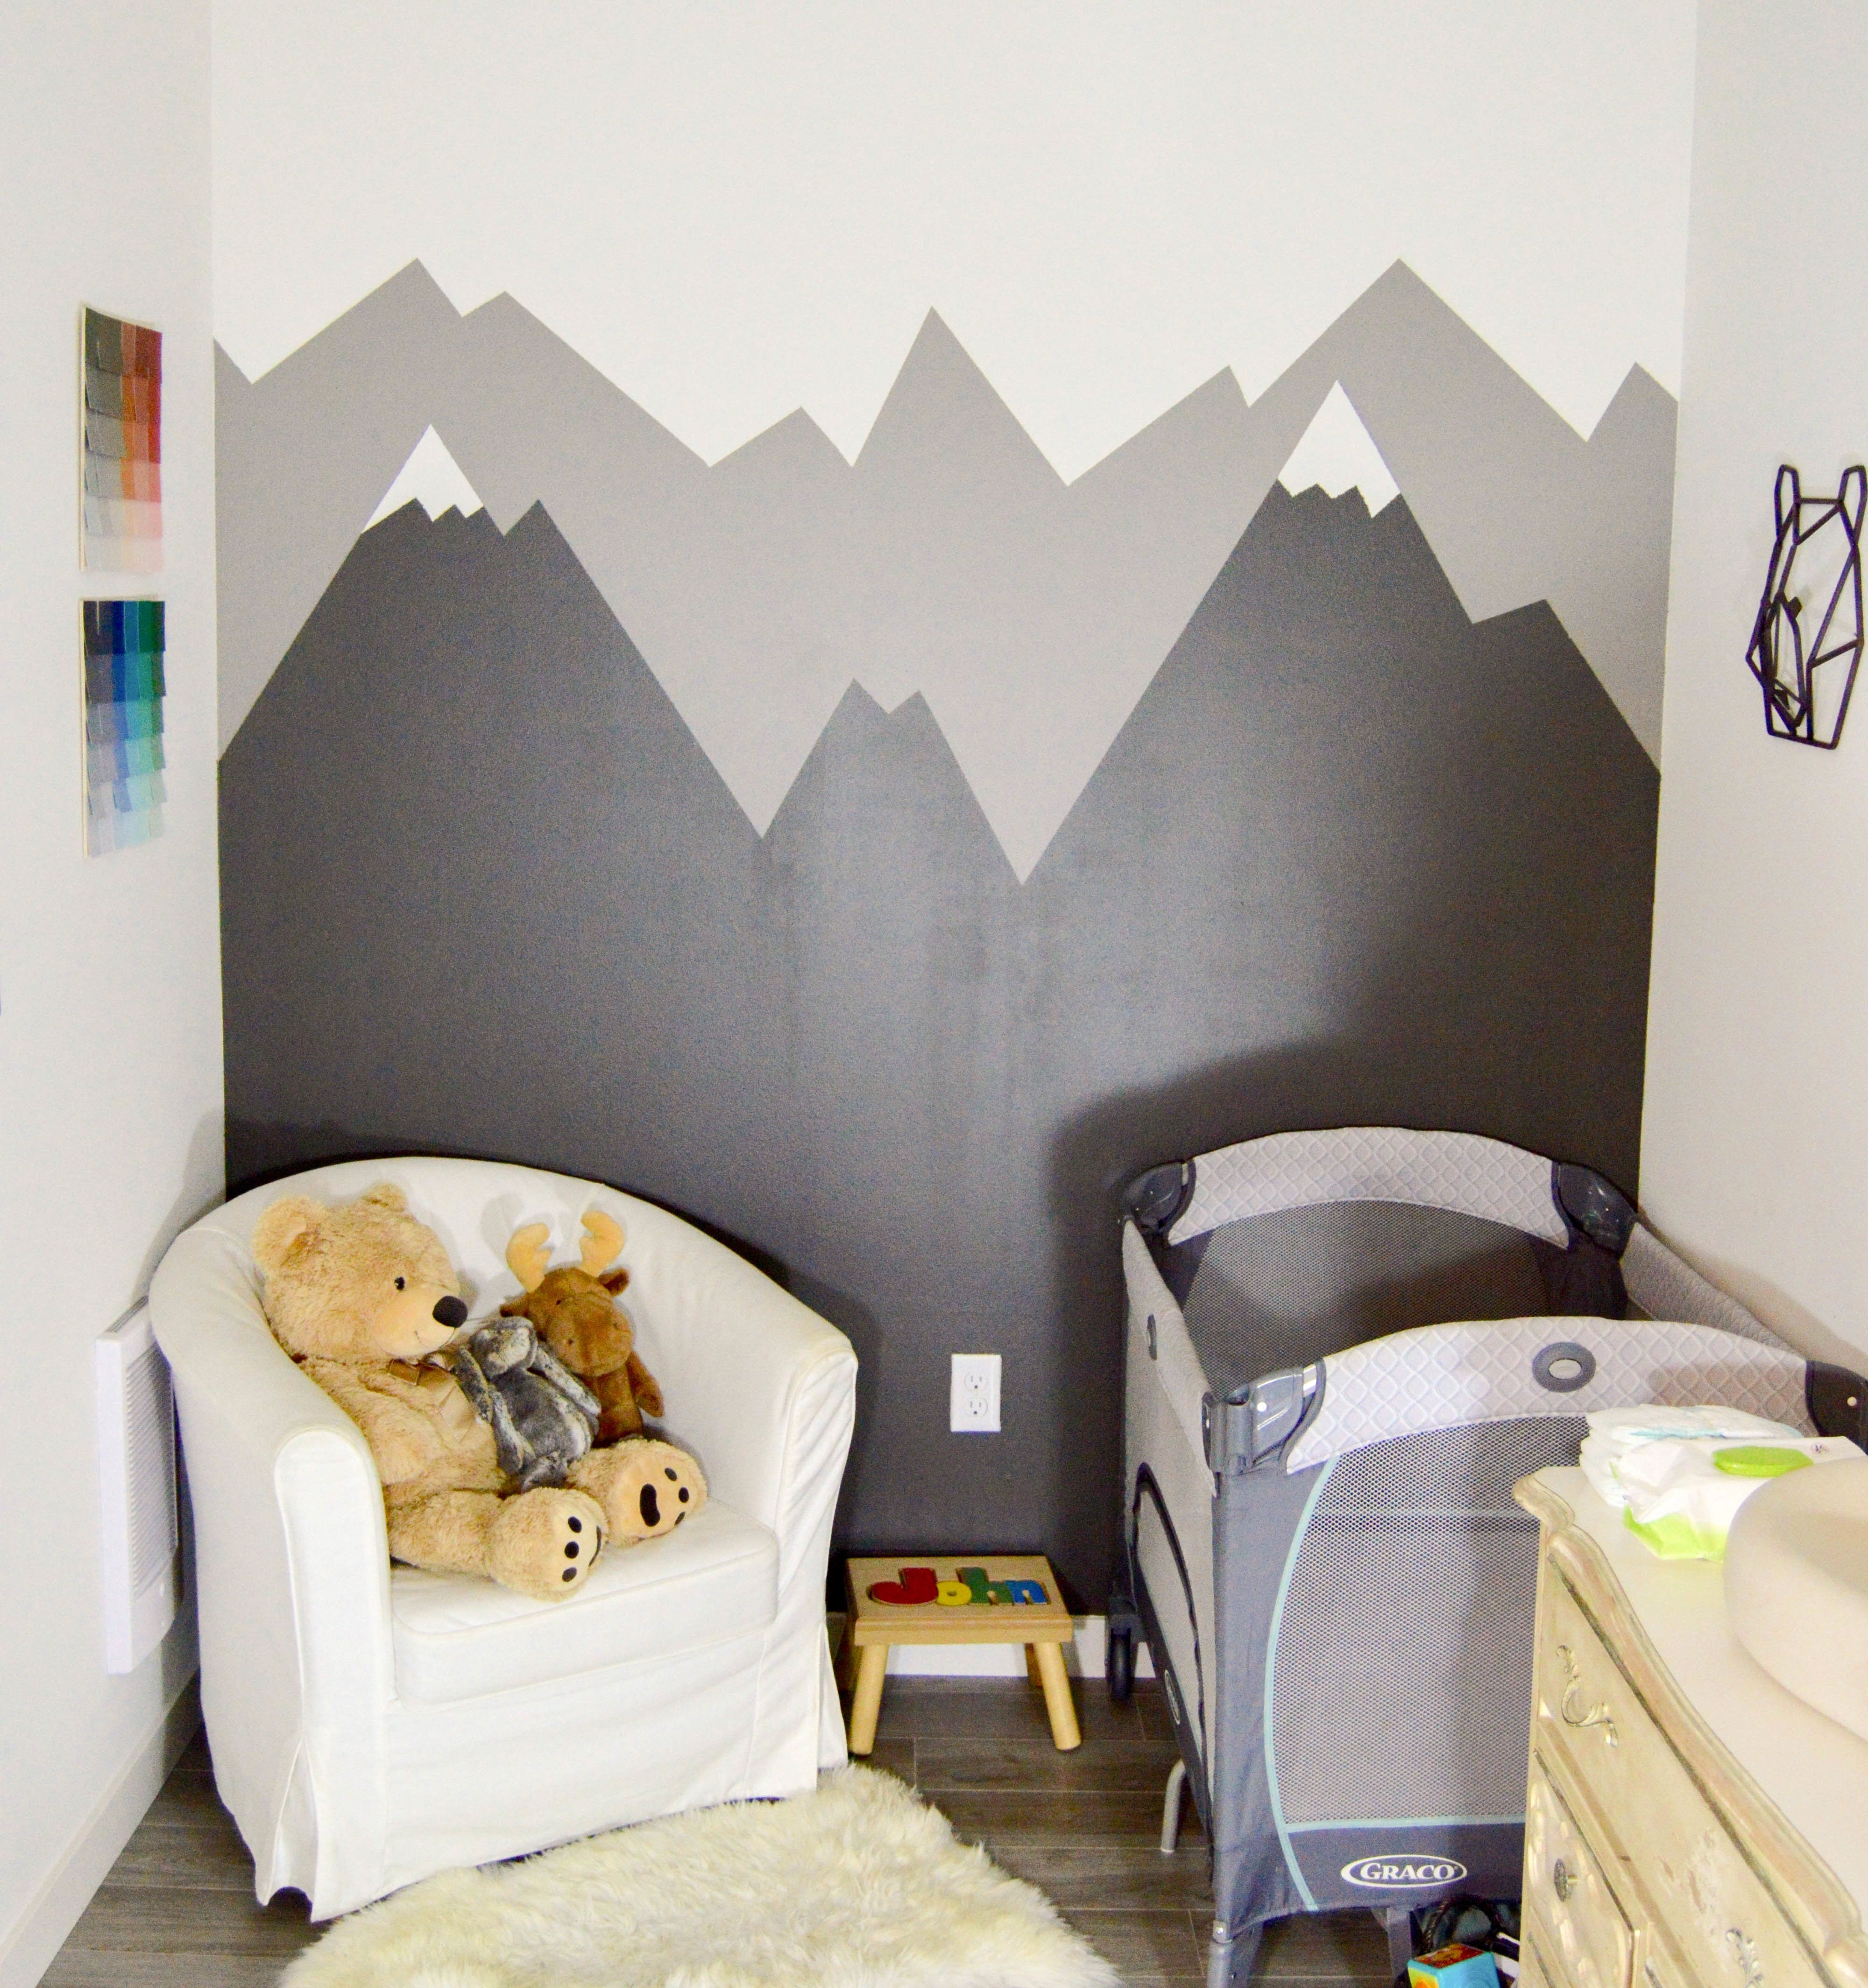 How To Paint A Mountain Mural Baby Room Themes Mountain Mural